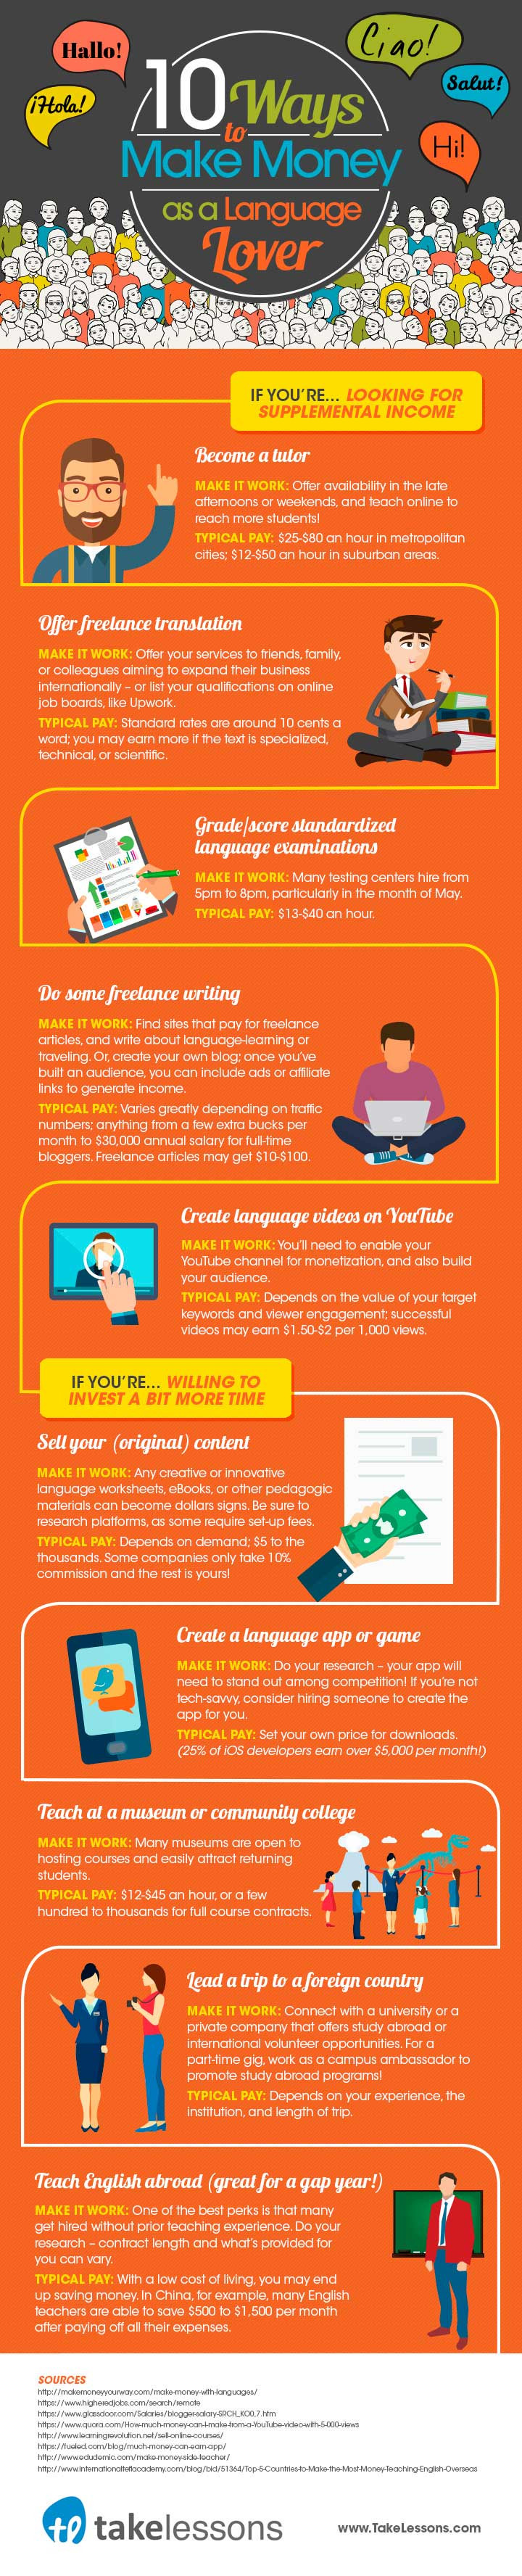 Infographic from TakeLessons